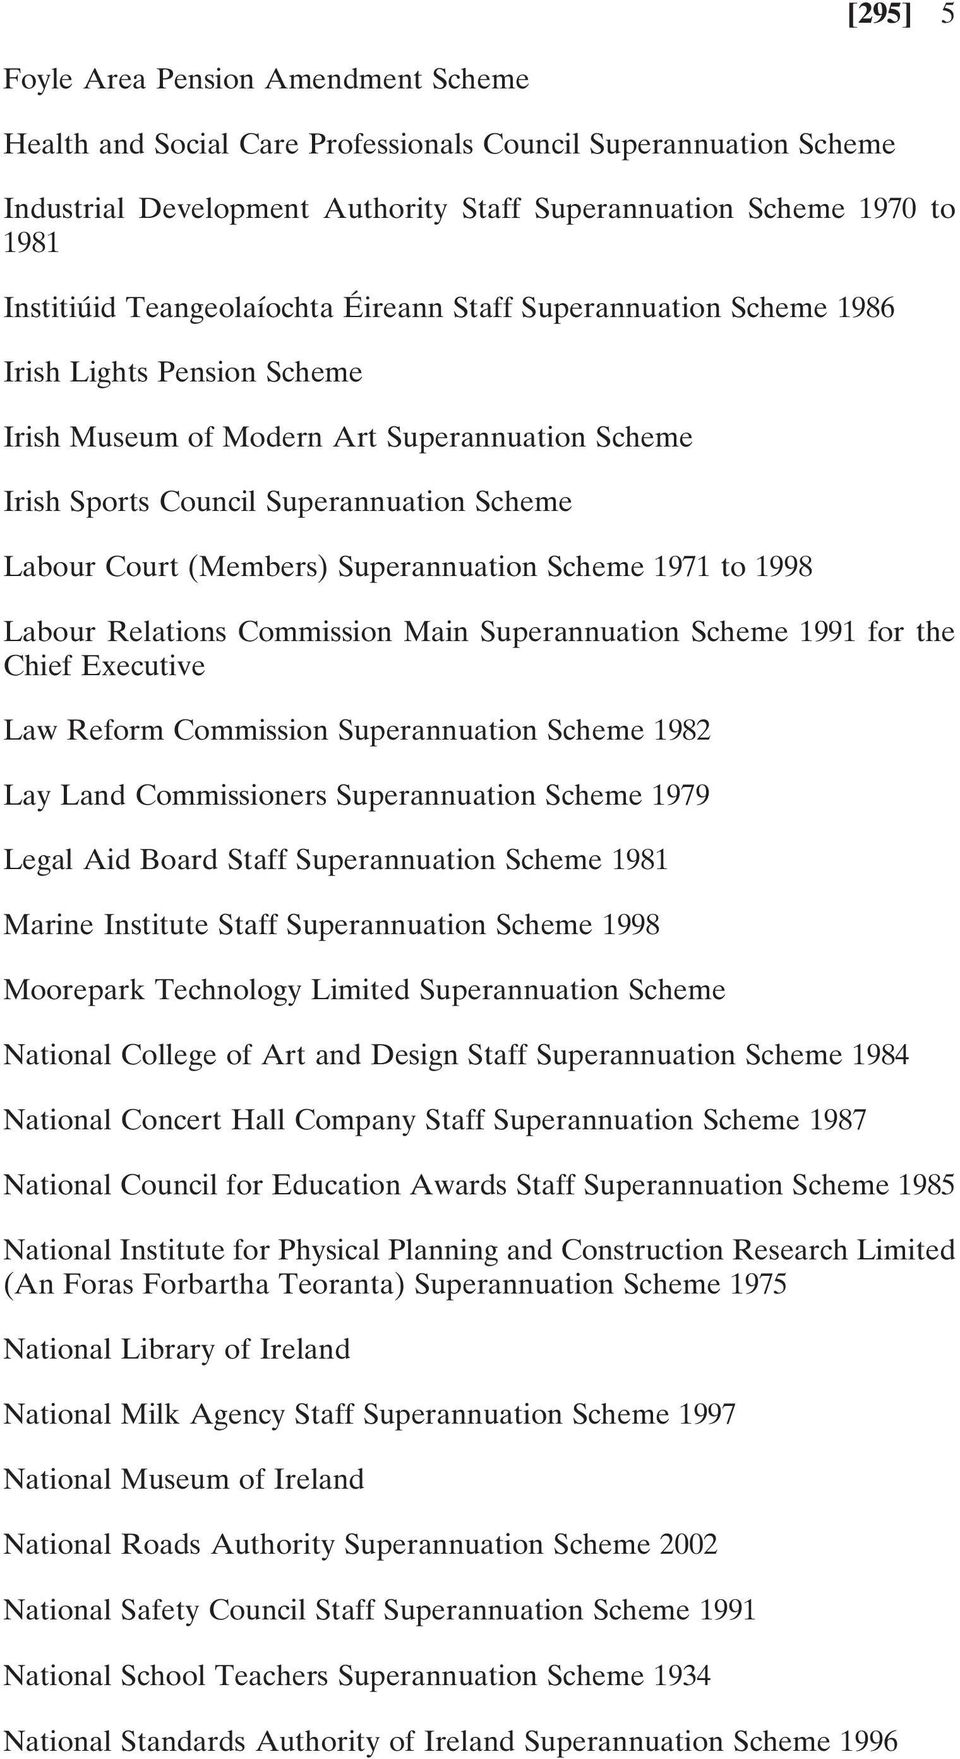 Superannuation Scheme 1971 to 1998 Labour Relations Commission Main Superannuation Scheme 1991 for the Chief Executive Law Reform Commission Superannuation Scheme 1982 Lay Land Commissioners